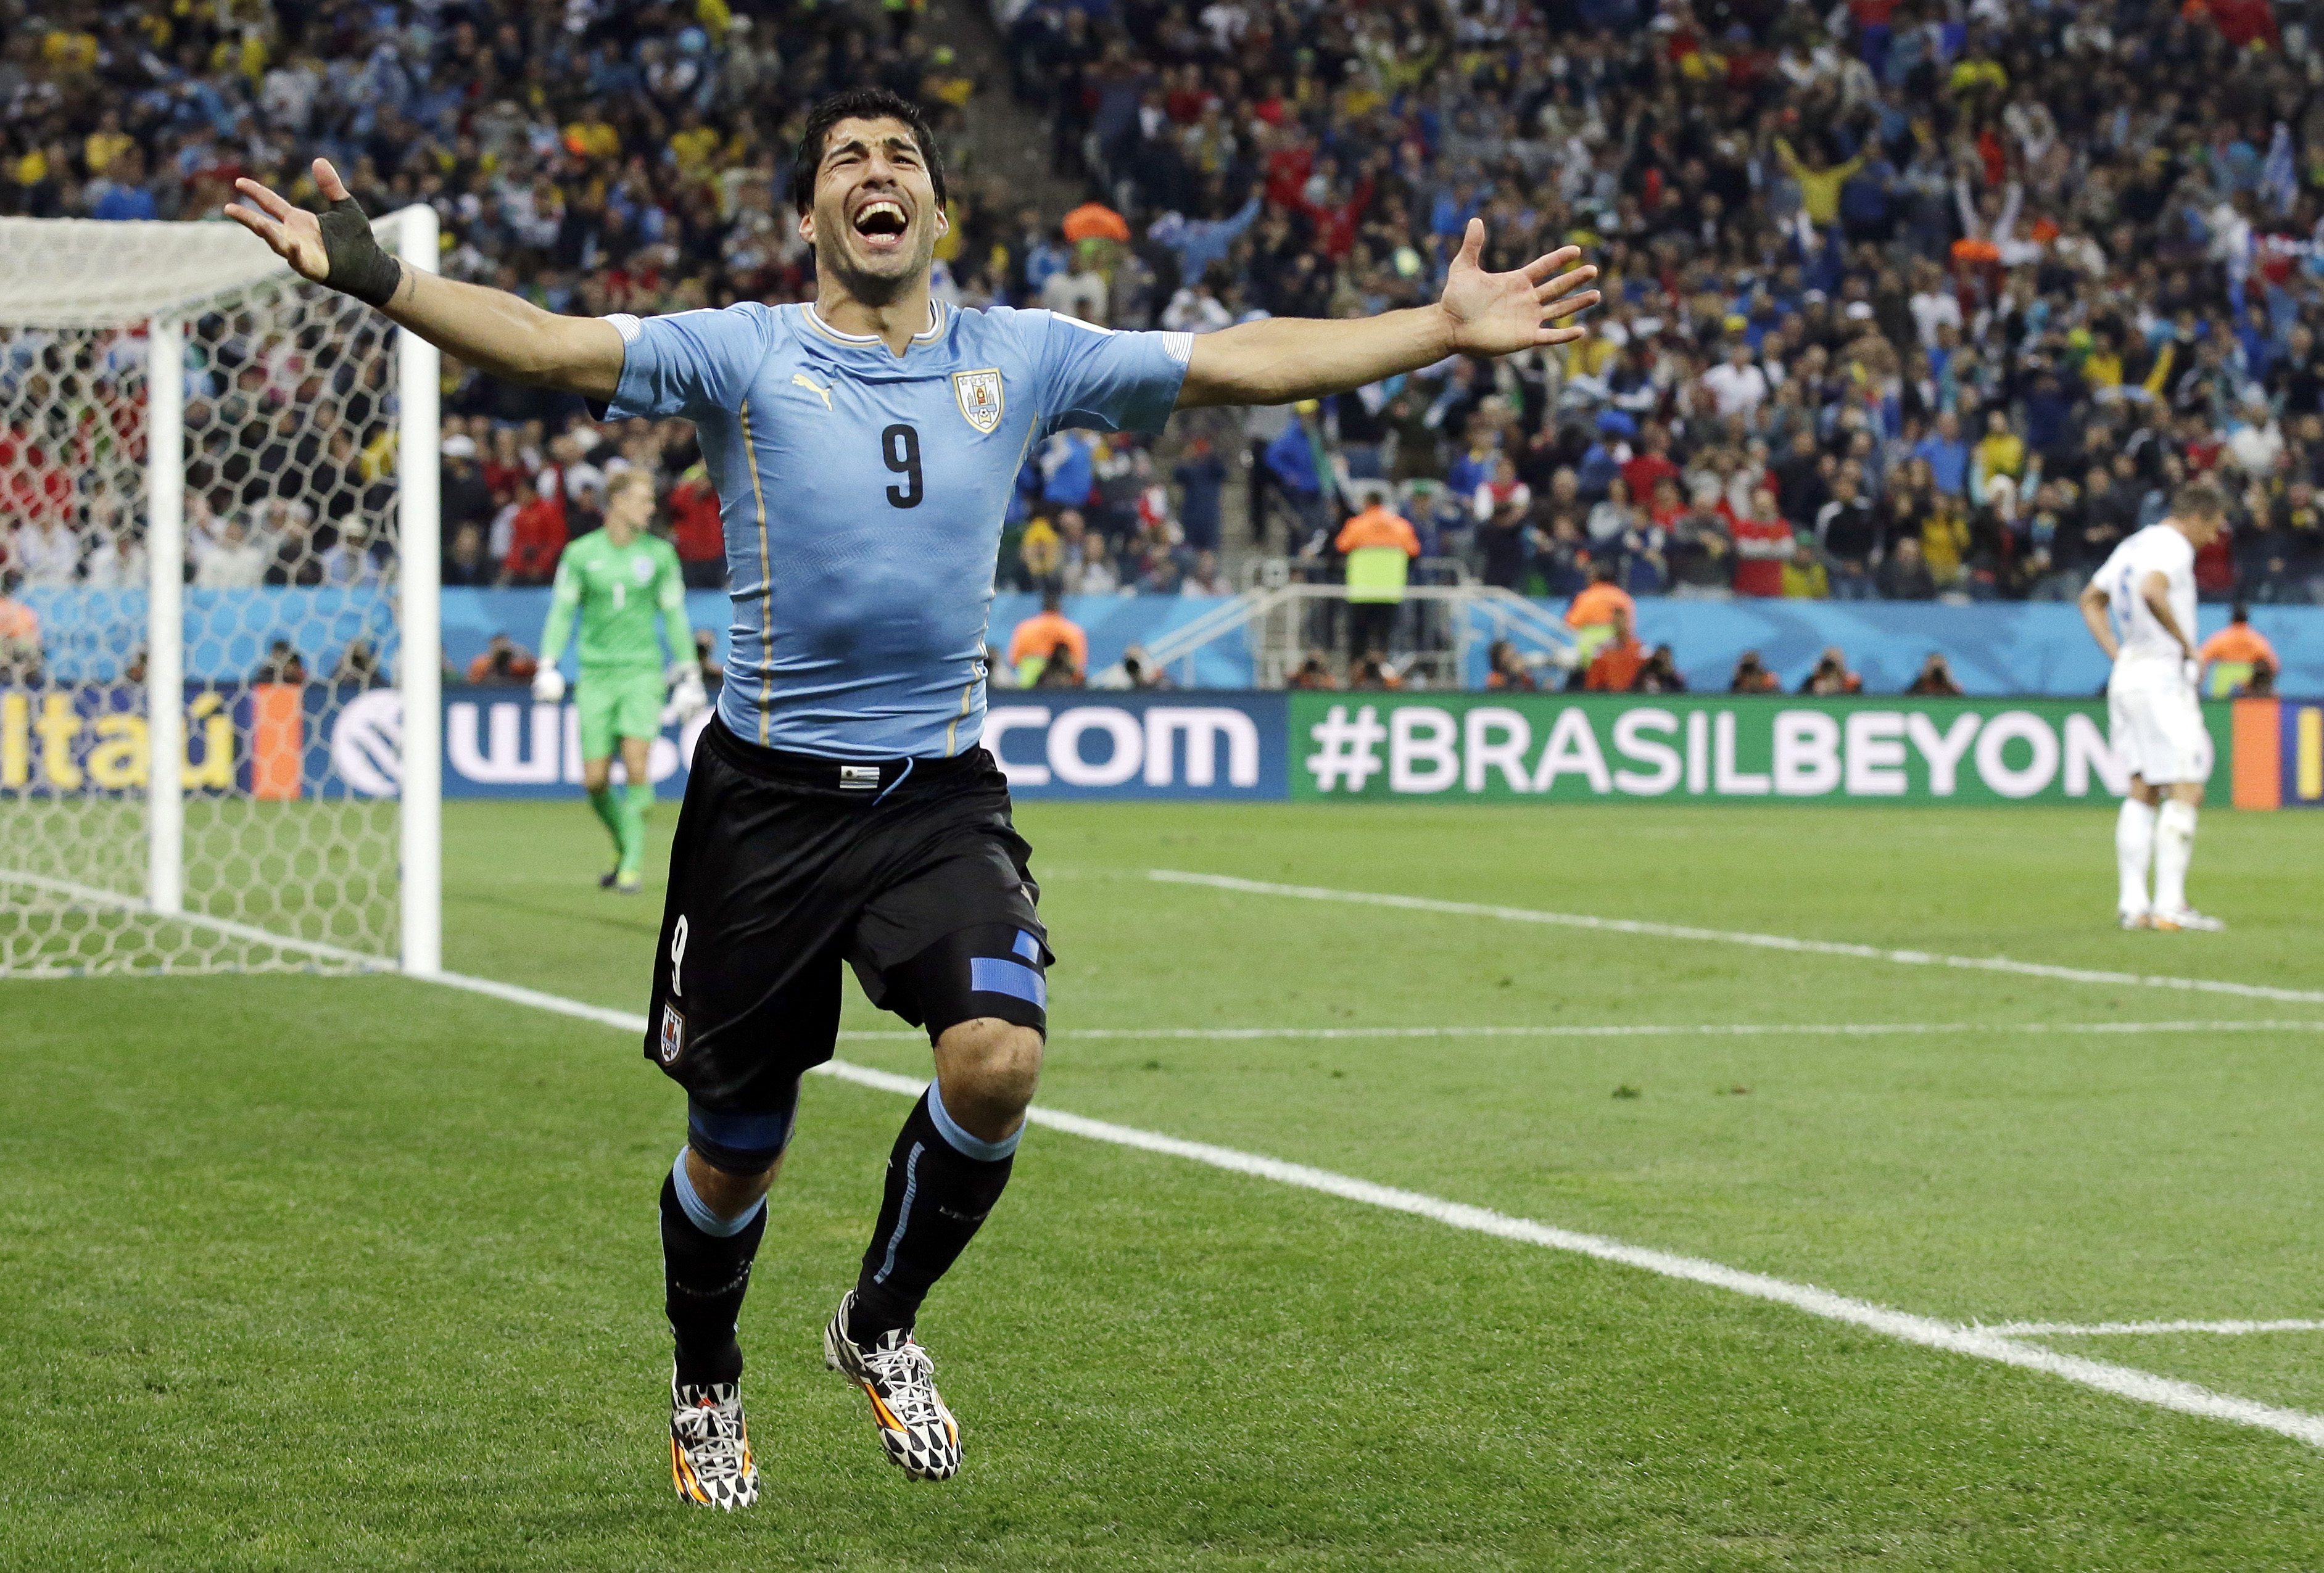 Uruguay's Luis Suarez celebrates after scoring his side's second goal during the group D World Cup soccer match between Uruguay and England at the Itaquerao Stadium in Sao Paulo, Brazil on June 19, 2014.